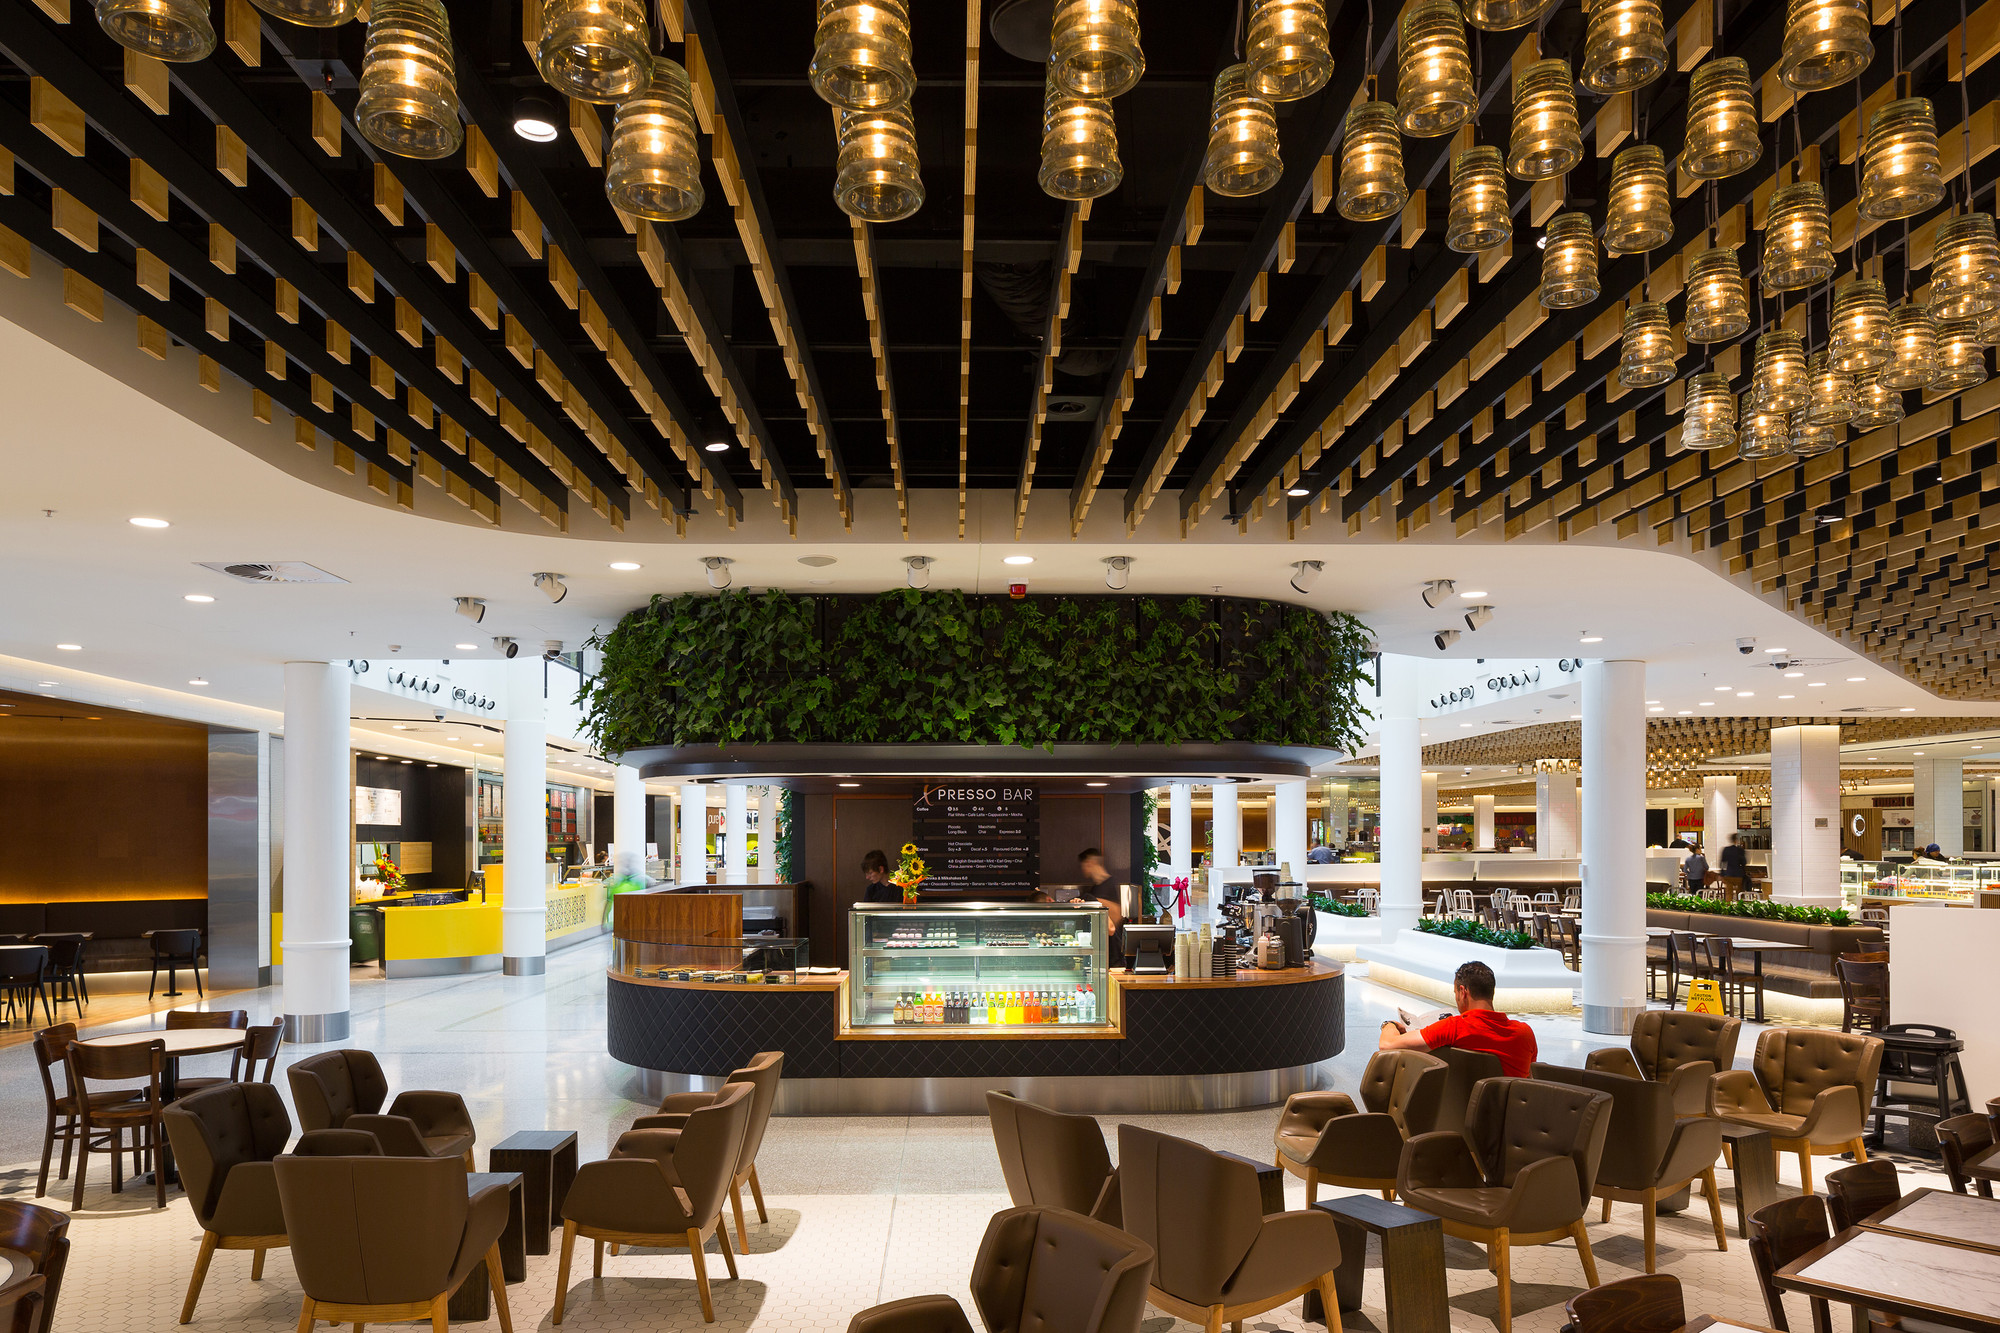 John Andrews Award For Commercial Architecture Canberra Centre Food Court By Cox Image